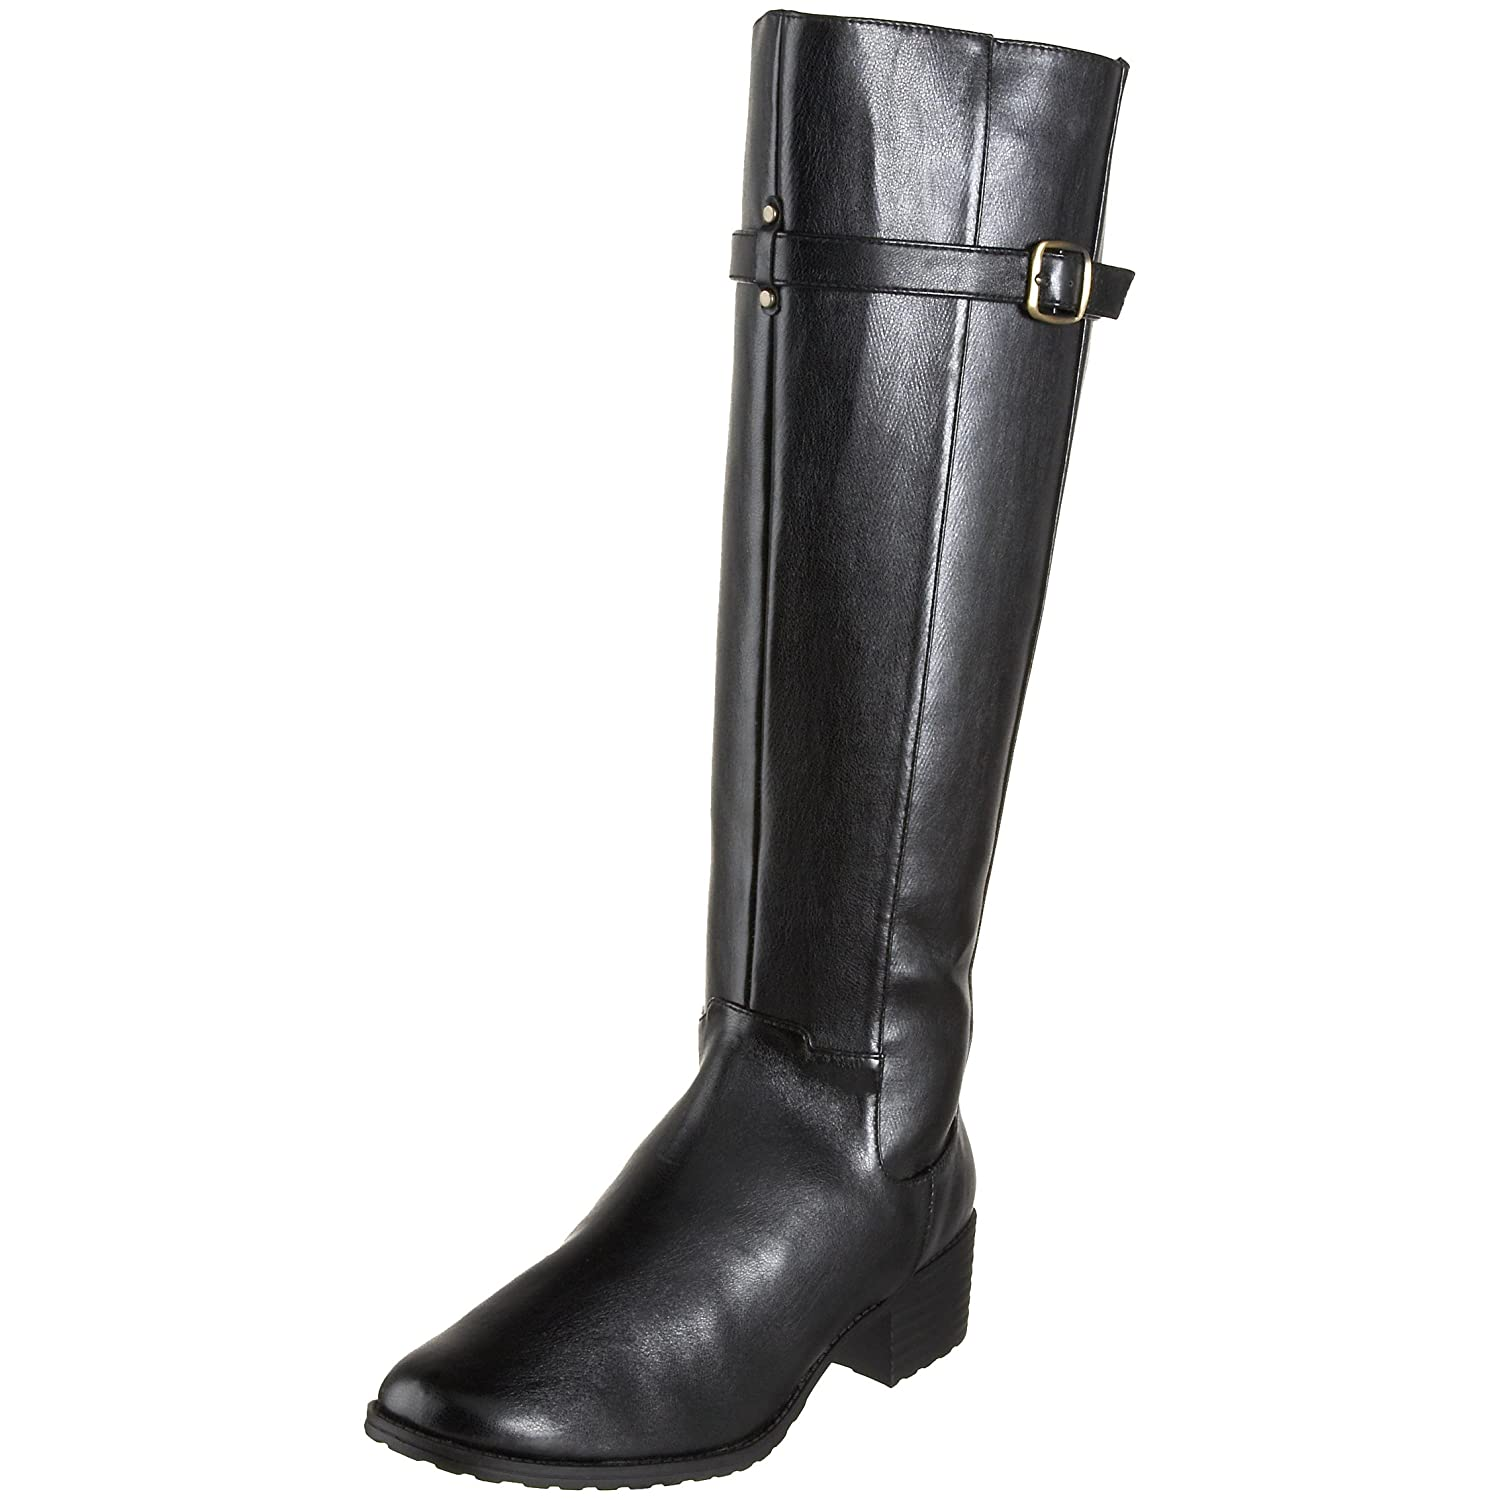 Annie Shoes  - Reins Knee-High Boot :  leather boots leather knee high leather boots womens shoes